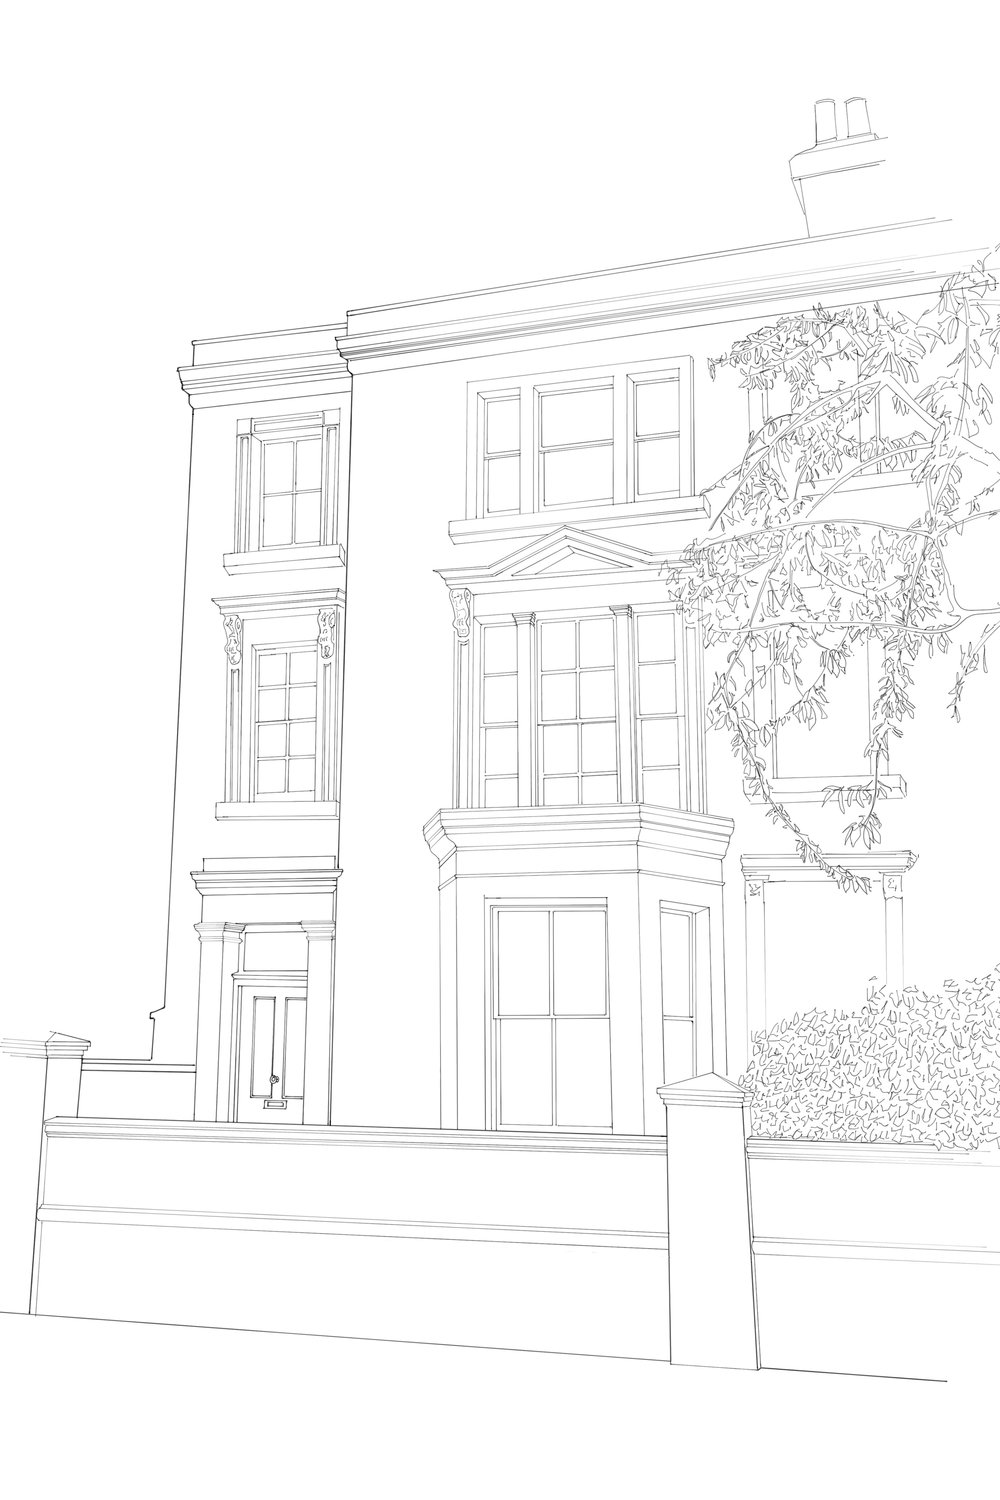 KENSINGTON - 5 BEDROOM FAMILY HOME  COMPLETION DUE 2020